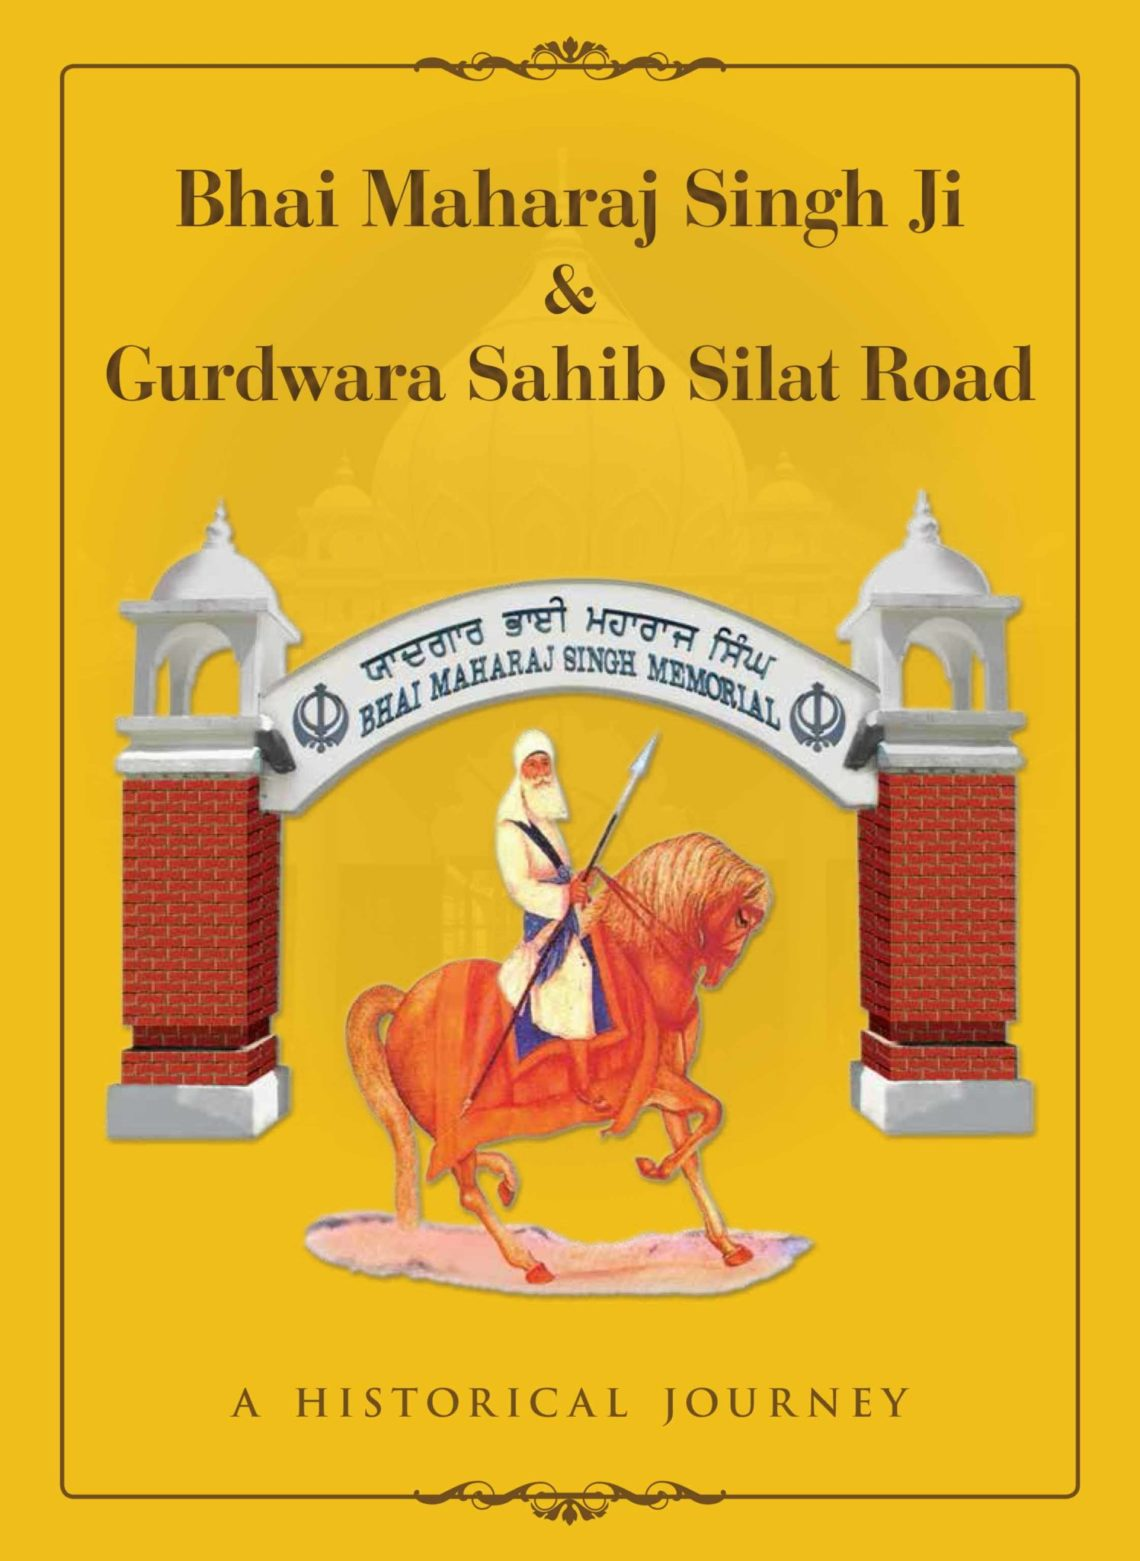 Bhai Maharaj Singh Ji & Gurdwara Sahib Silat Road - 2nd Revision-1